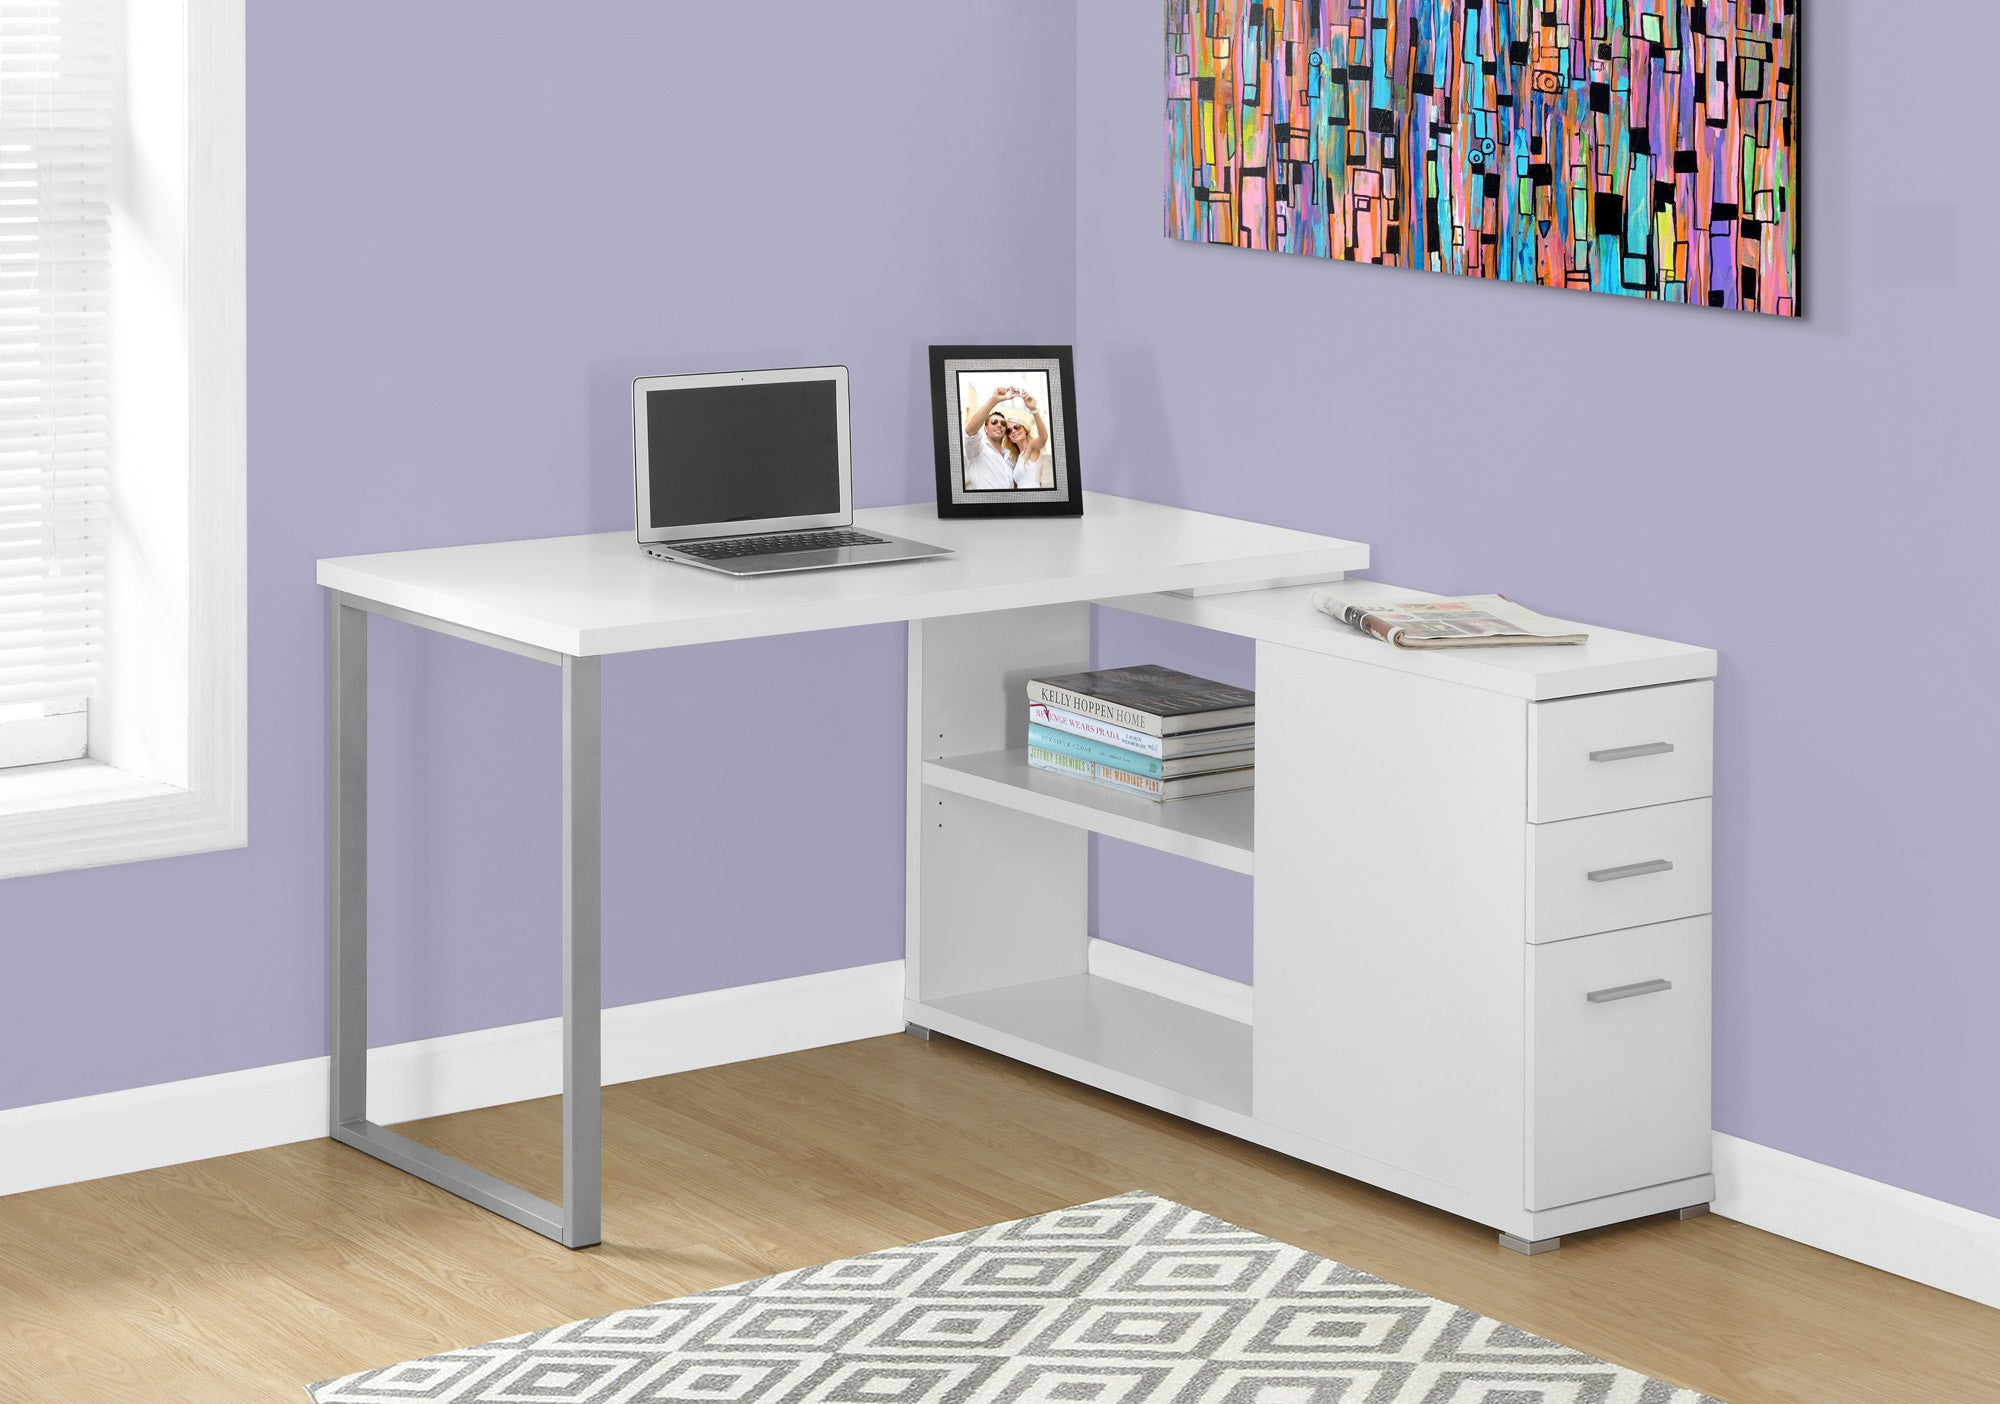 lockable top chairs furniture pedestal office view desks modern reception cabinet bench style modular cool executive stylish white icarus home for desk